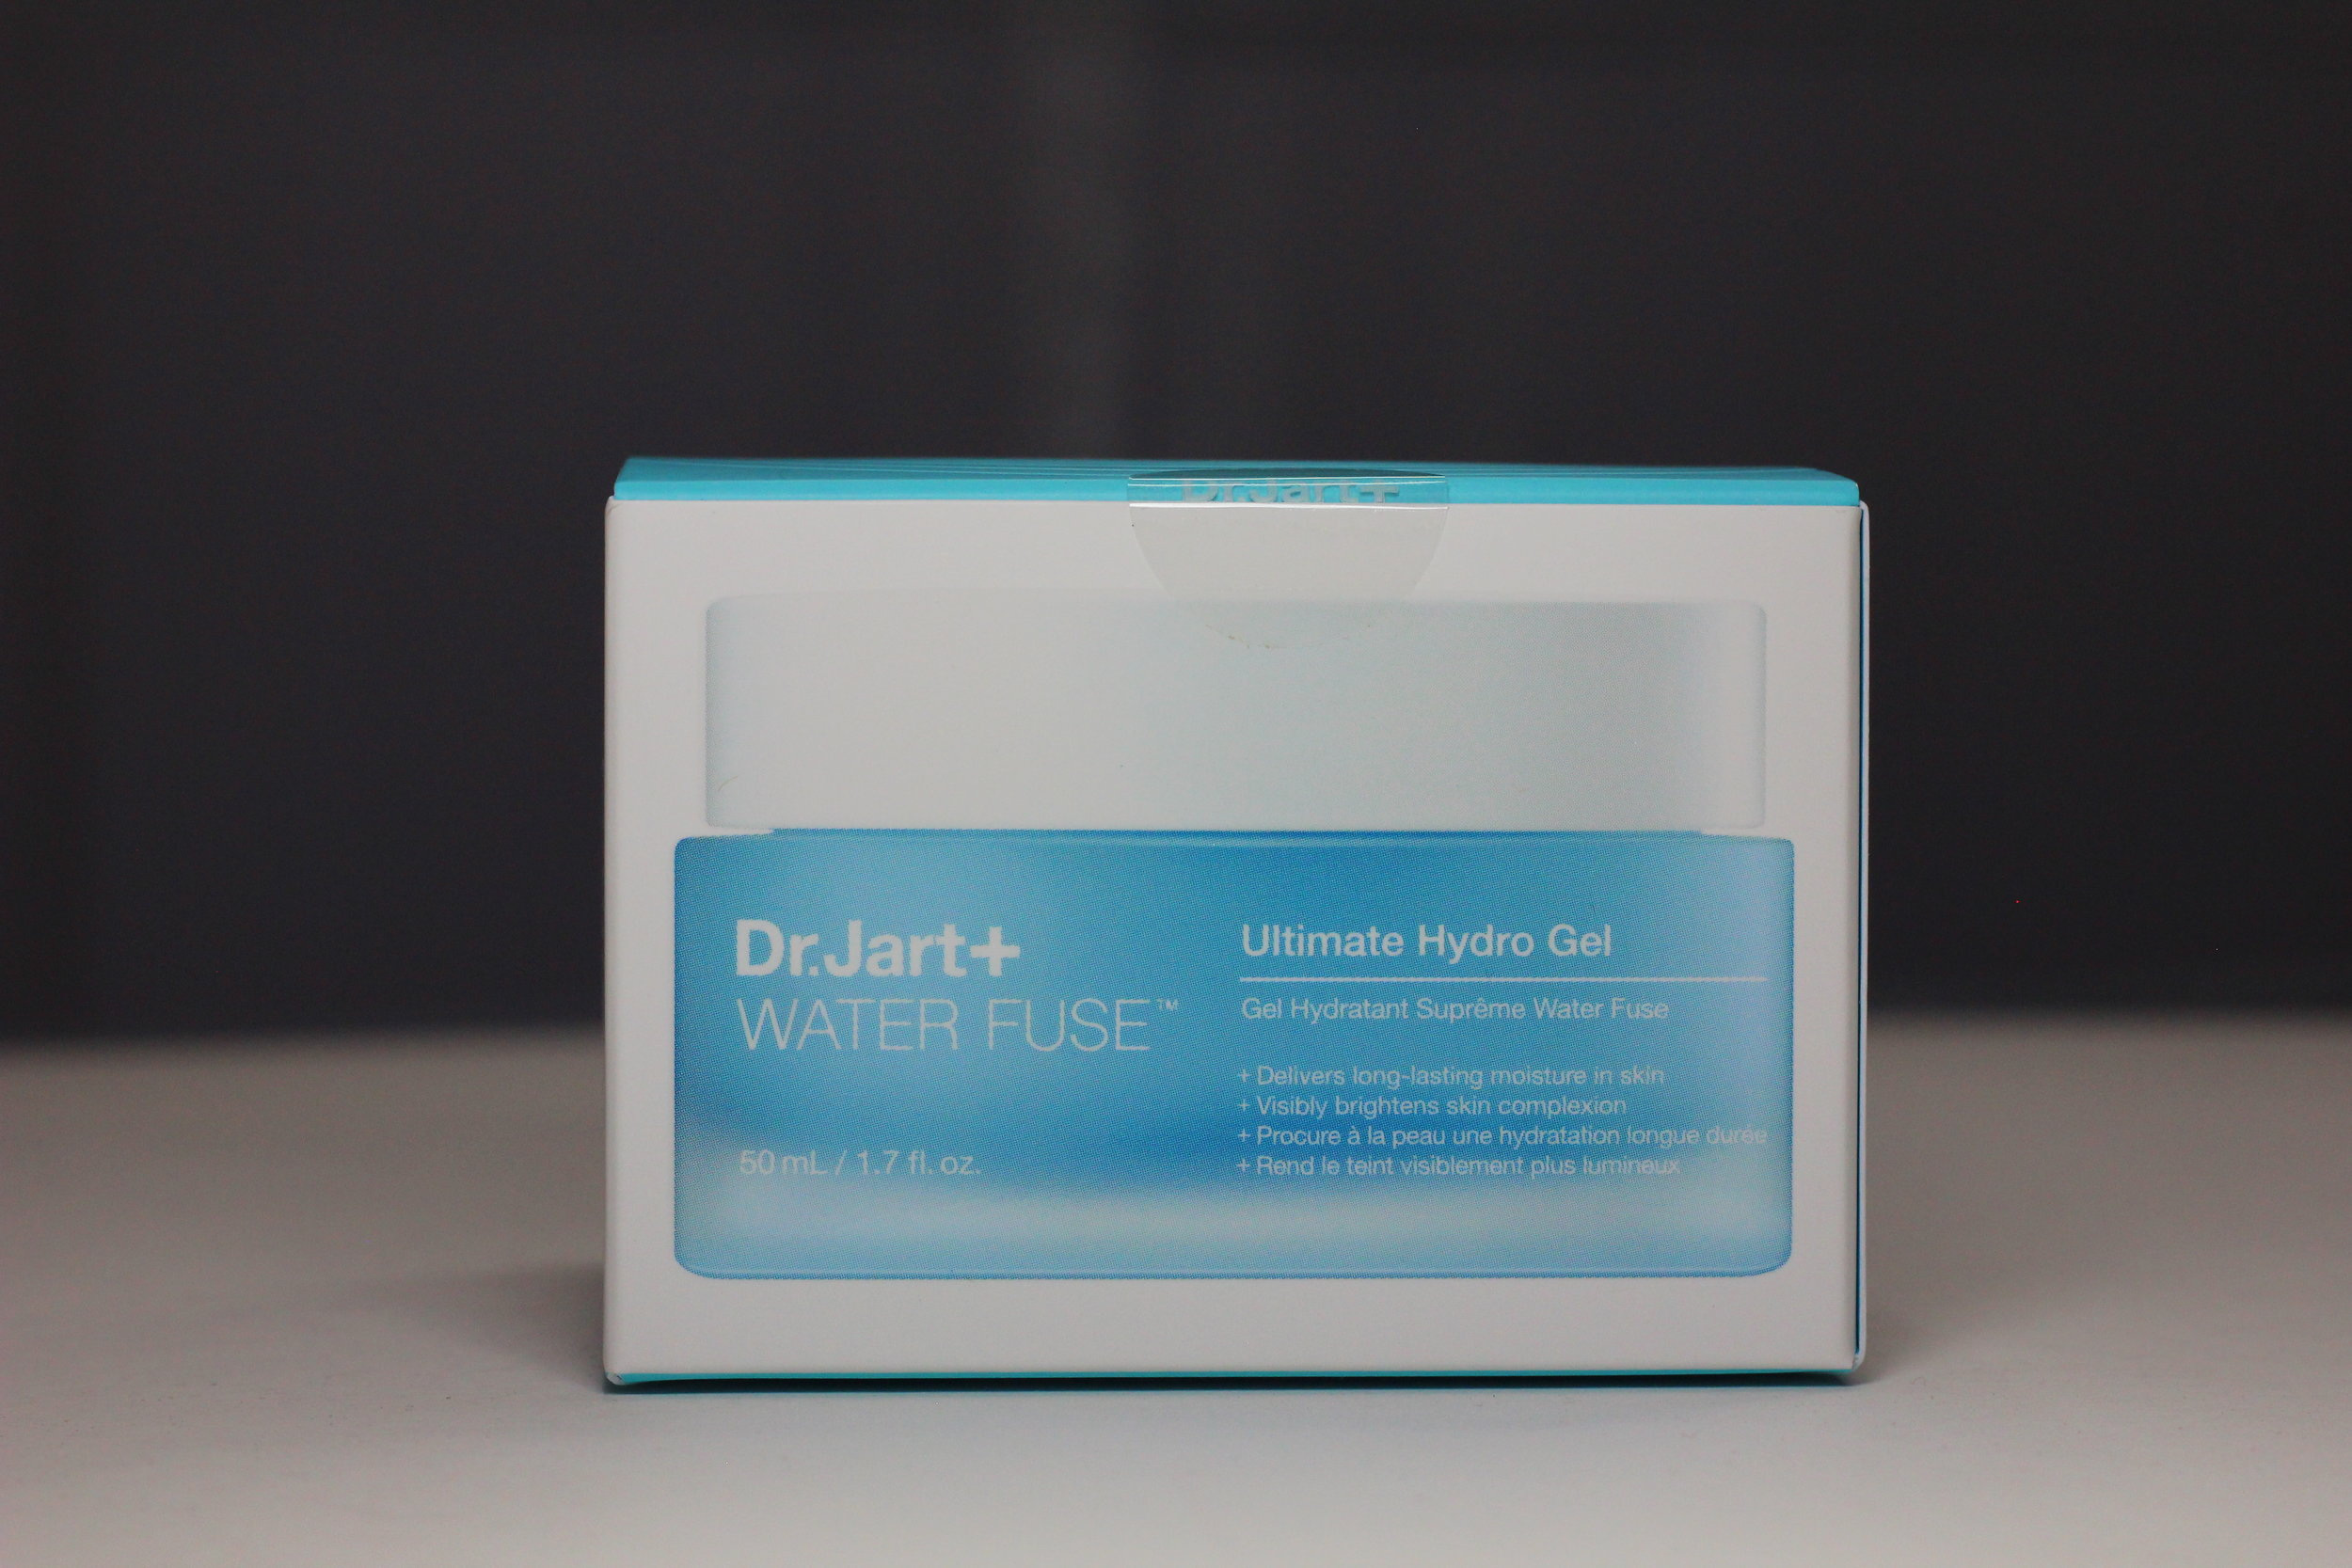 Dr Jart Ultimate Hydro Gel review